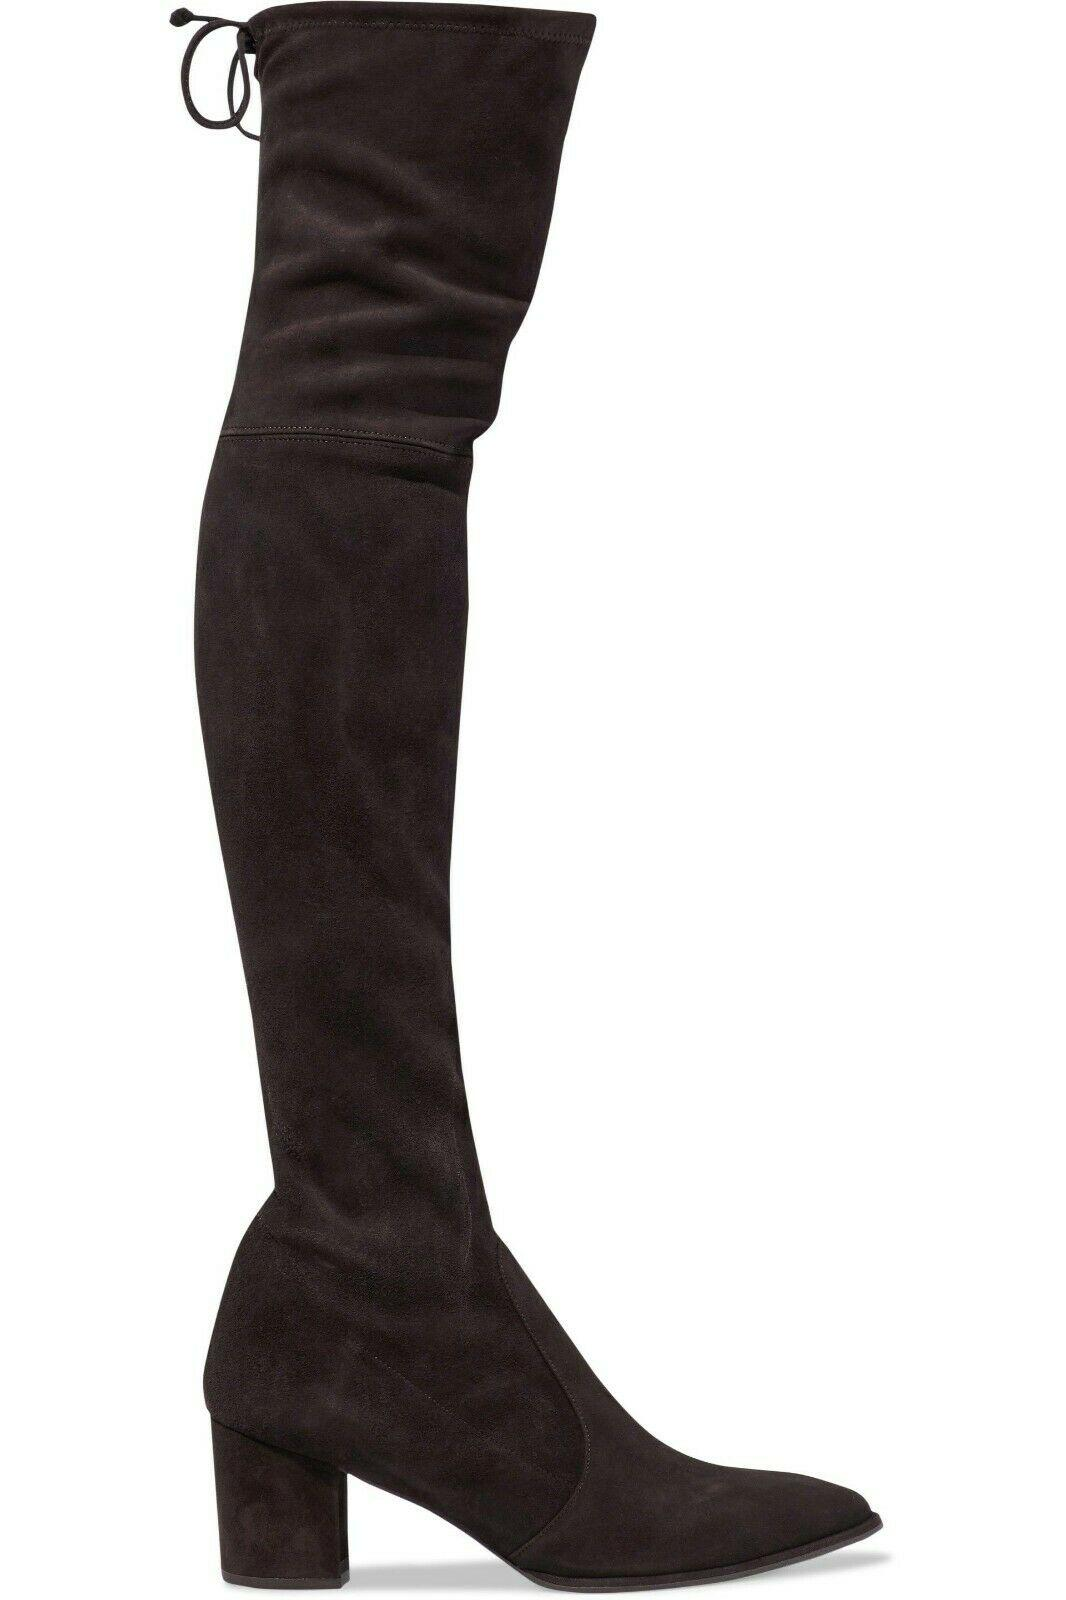 $798 Stuart Weitzman Thighlan Over Knee Boot Suede Boots Thigh High Shoes 10